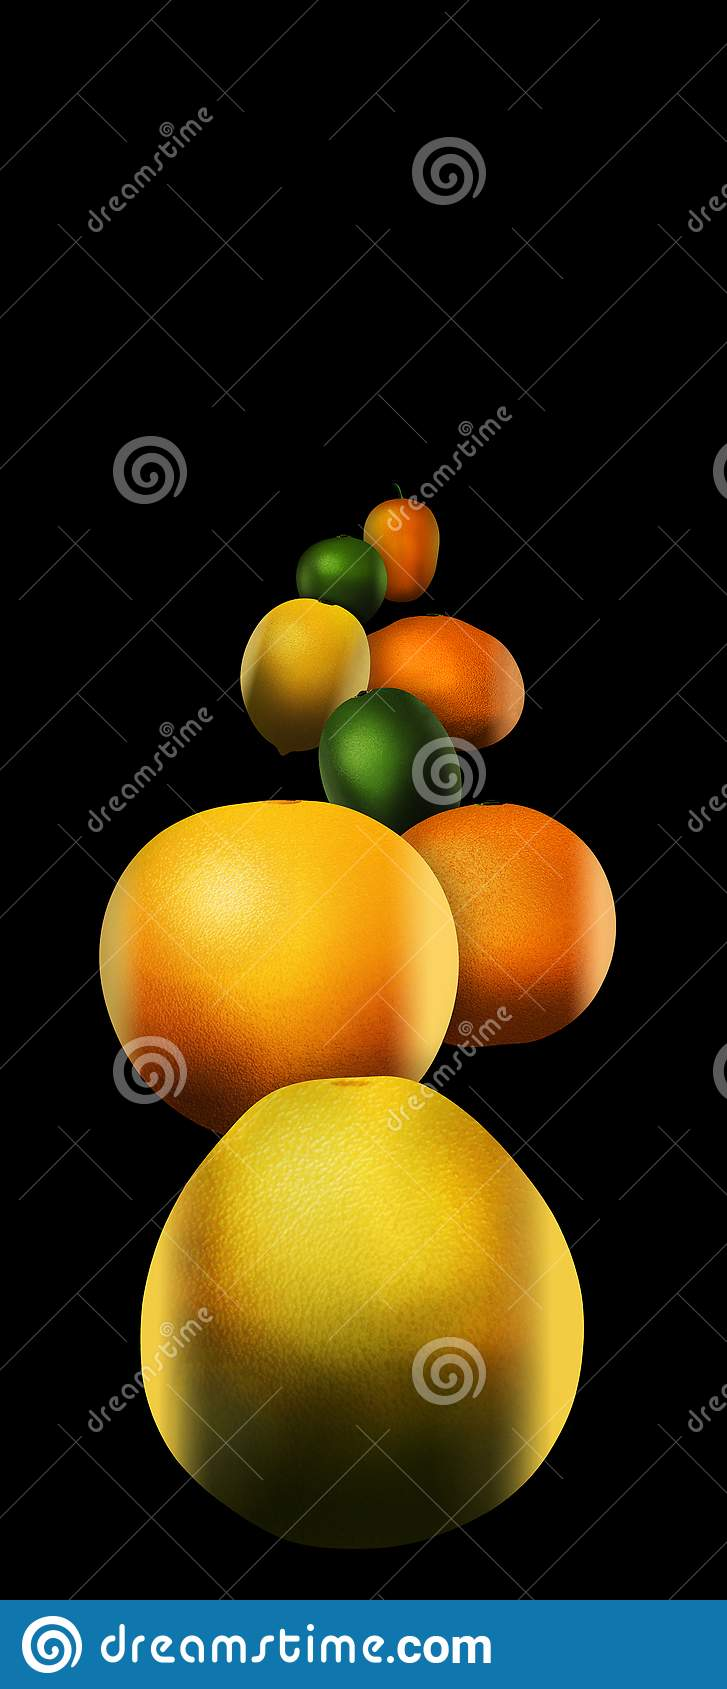 Eight popular citrus fruits are pictured. These include: pomelo